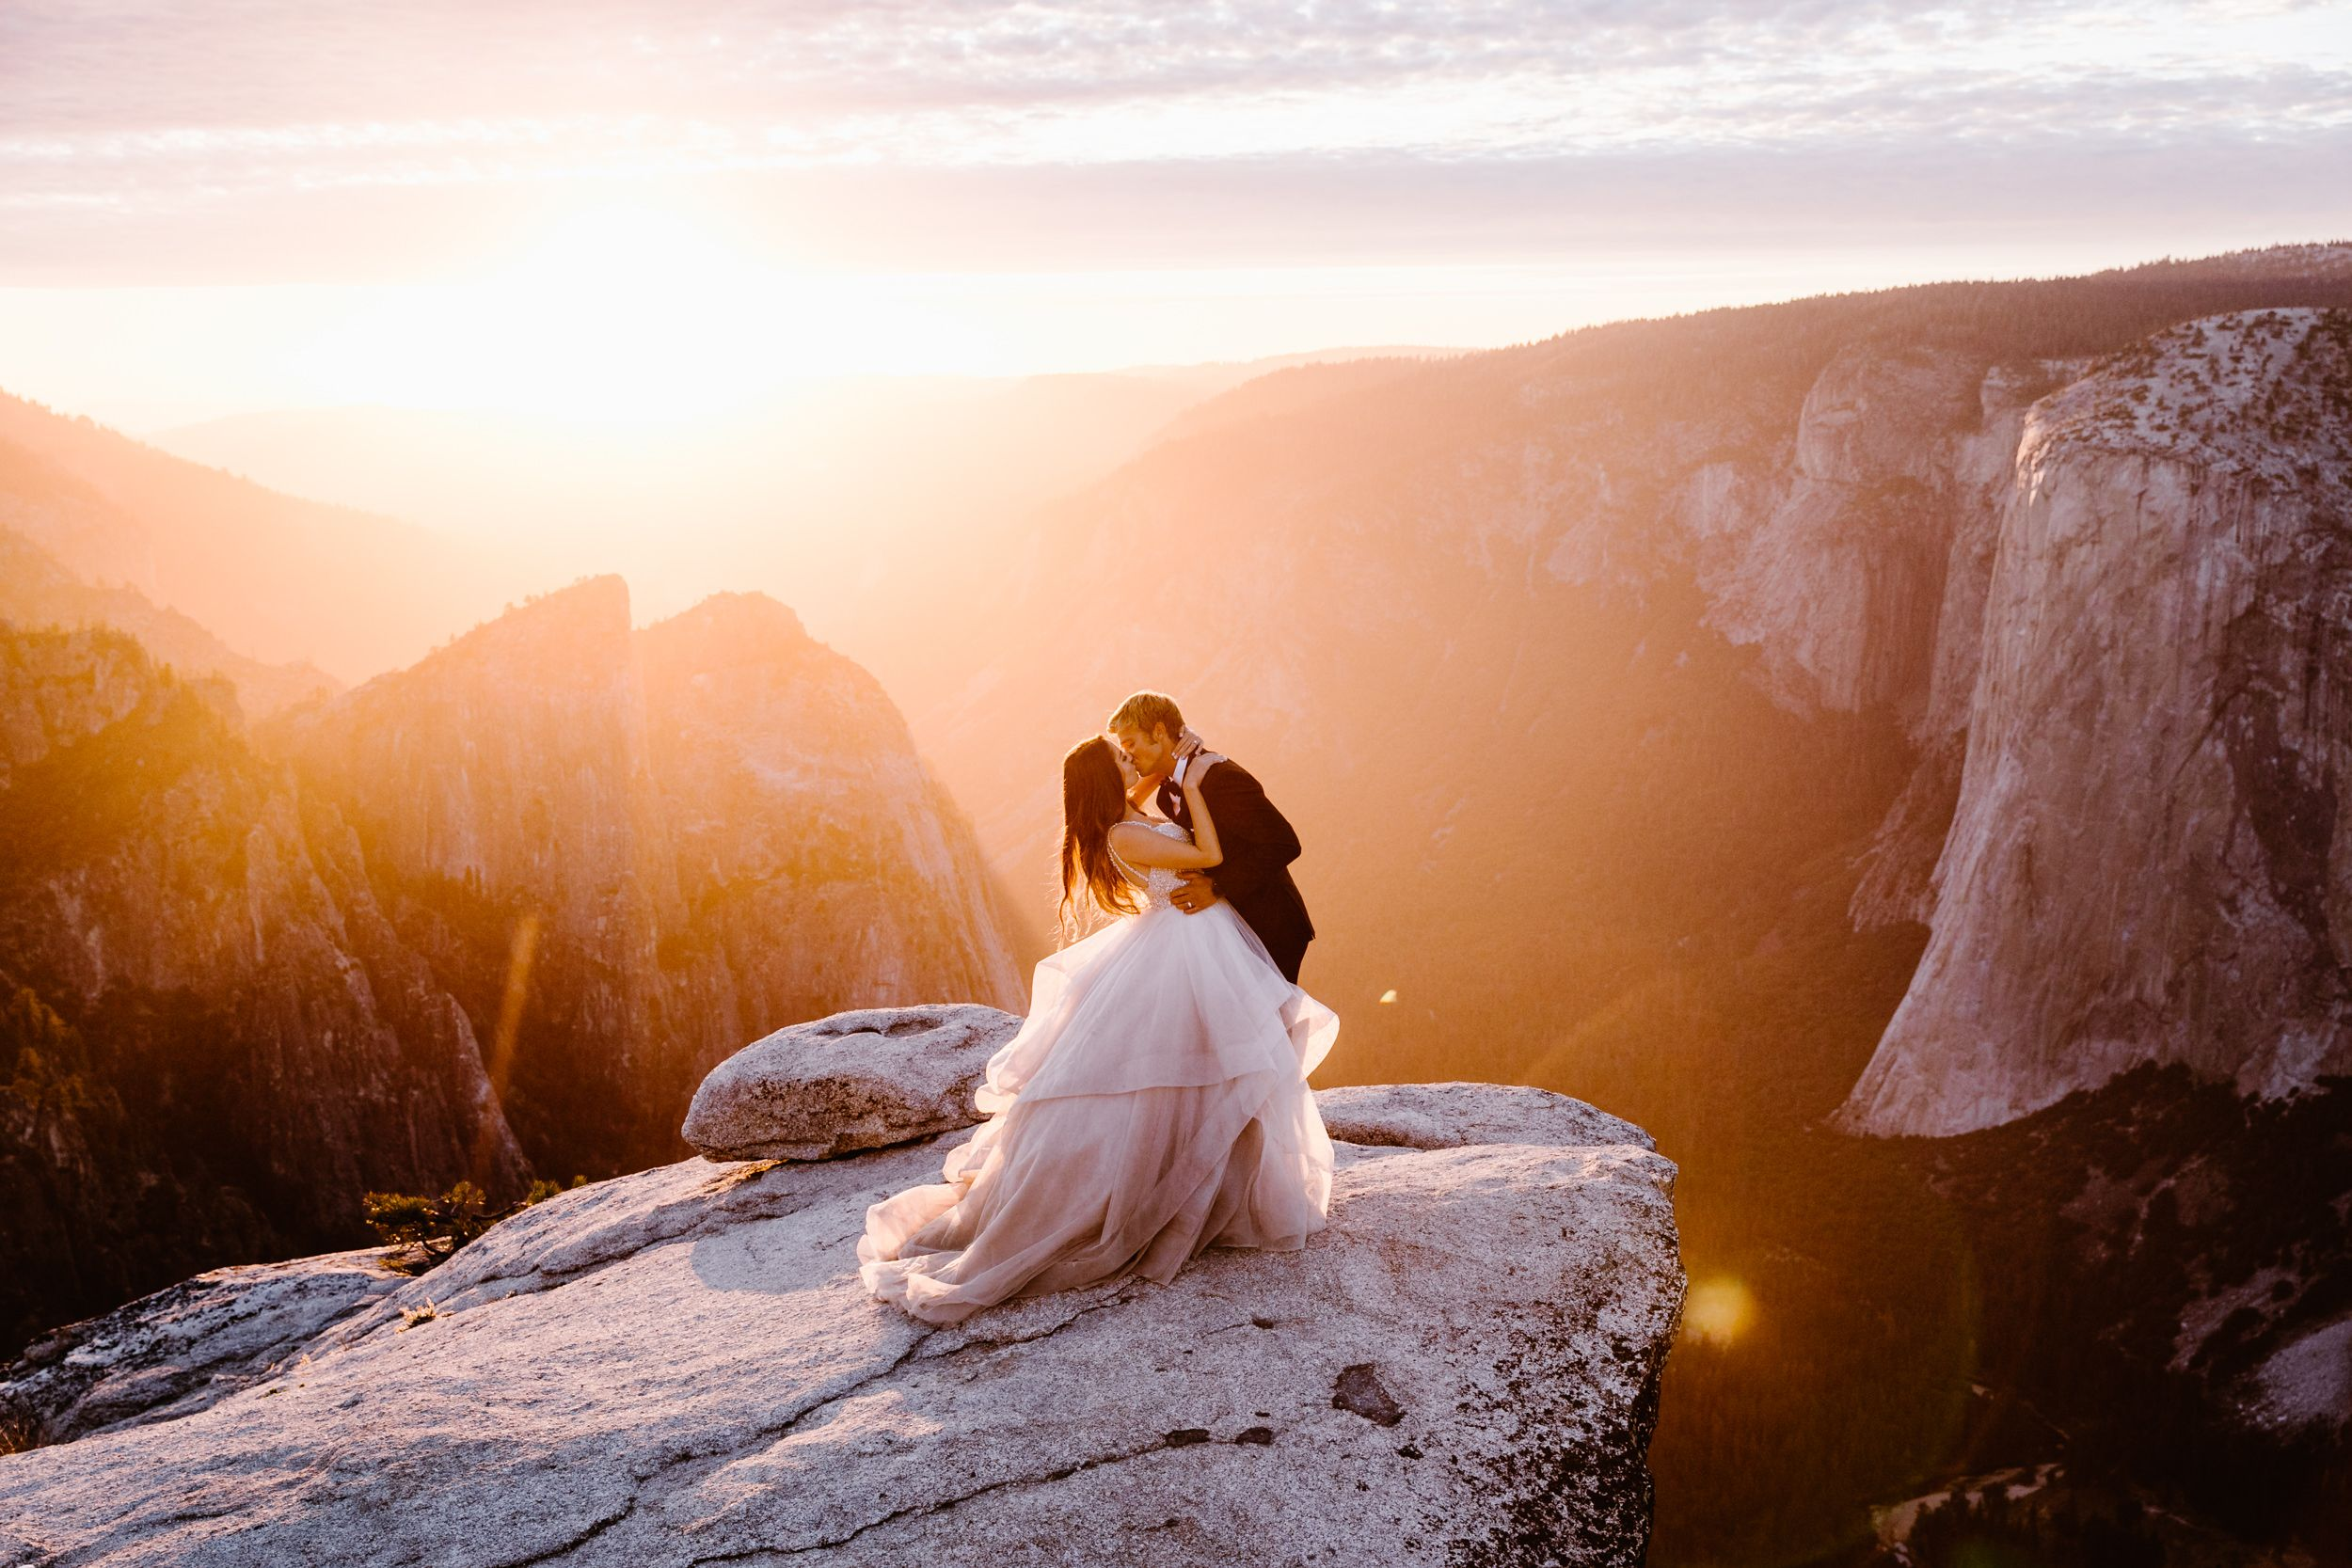 Yosemite National Park Intimate Wedding At Glacier Point Hike To Taft Point Adventure Elopement Photographer Adventure Wedding Elopement Photographers I Adventure Elopement Yosemite Wedding Adventure Wedding Photography